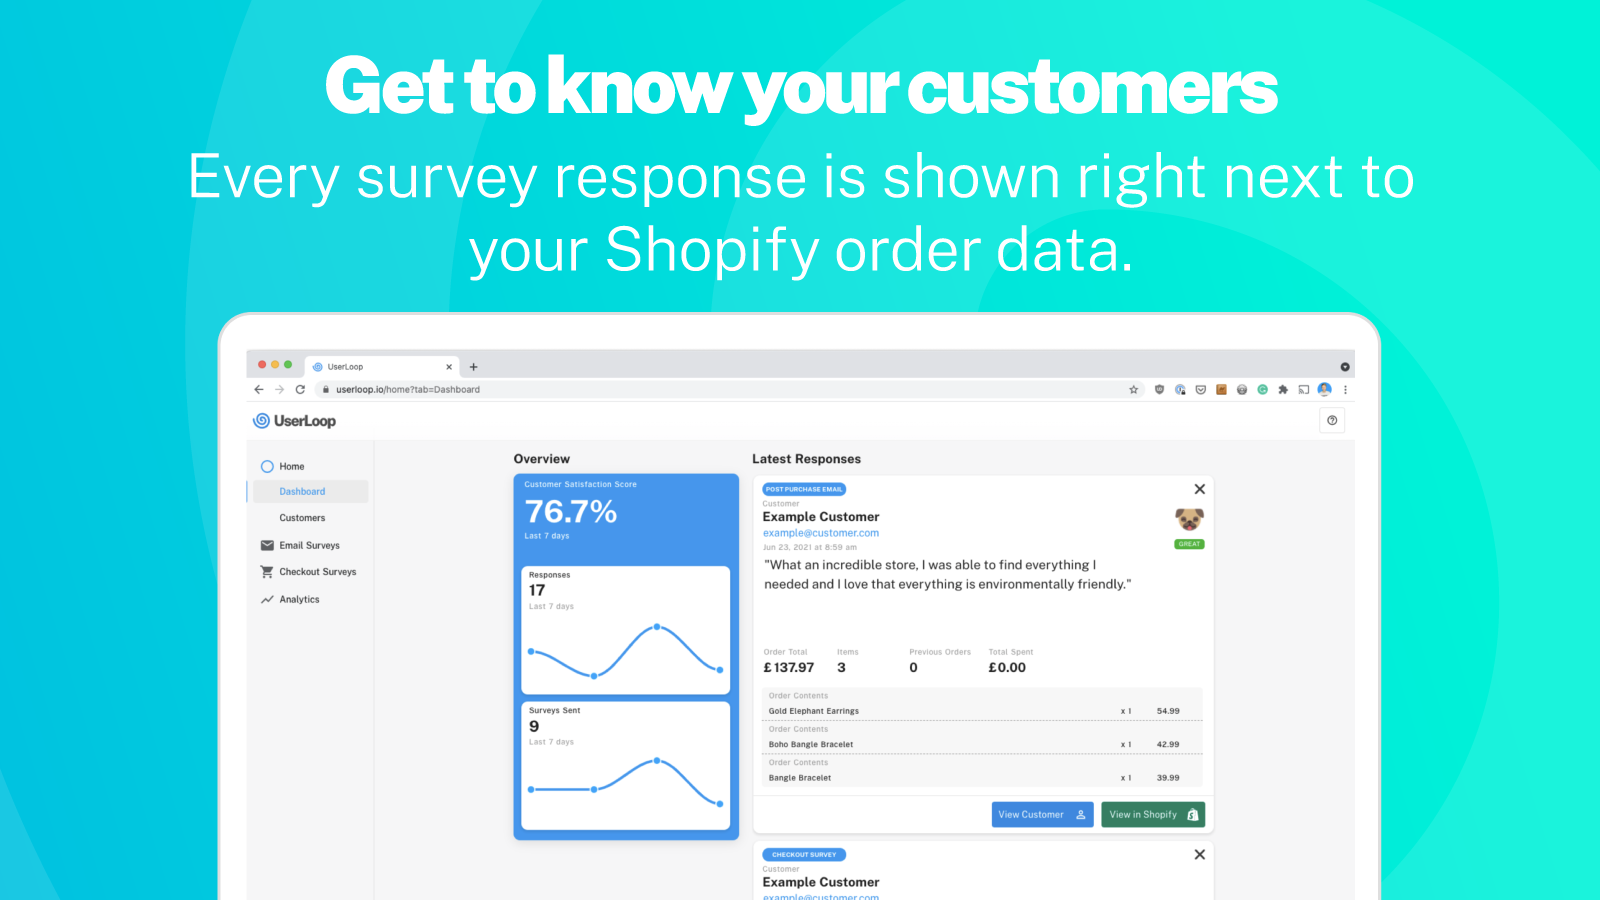 See customer responses right next to order and revenue data